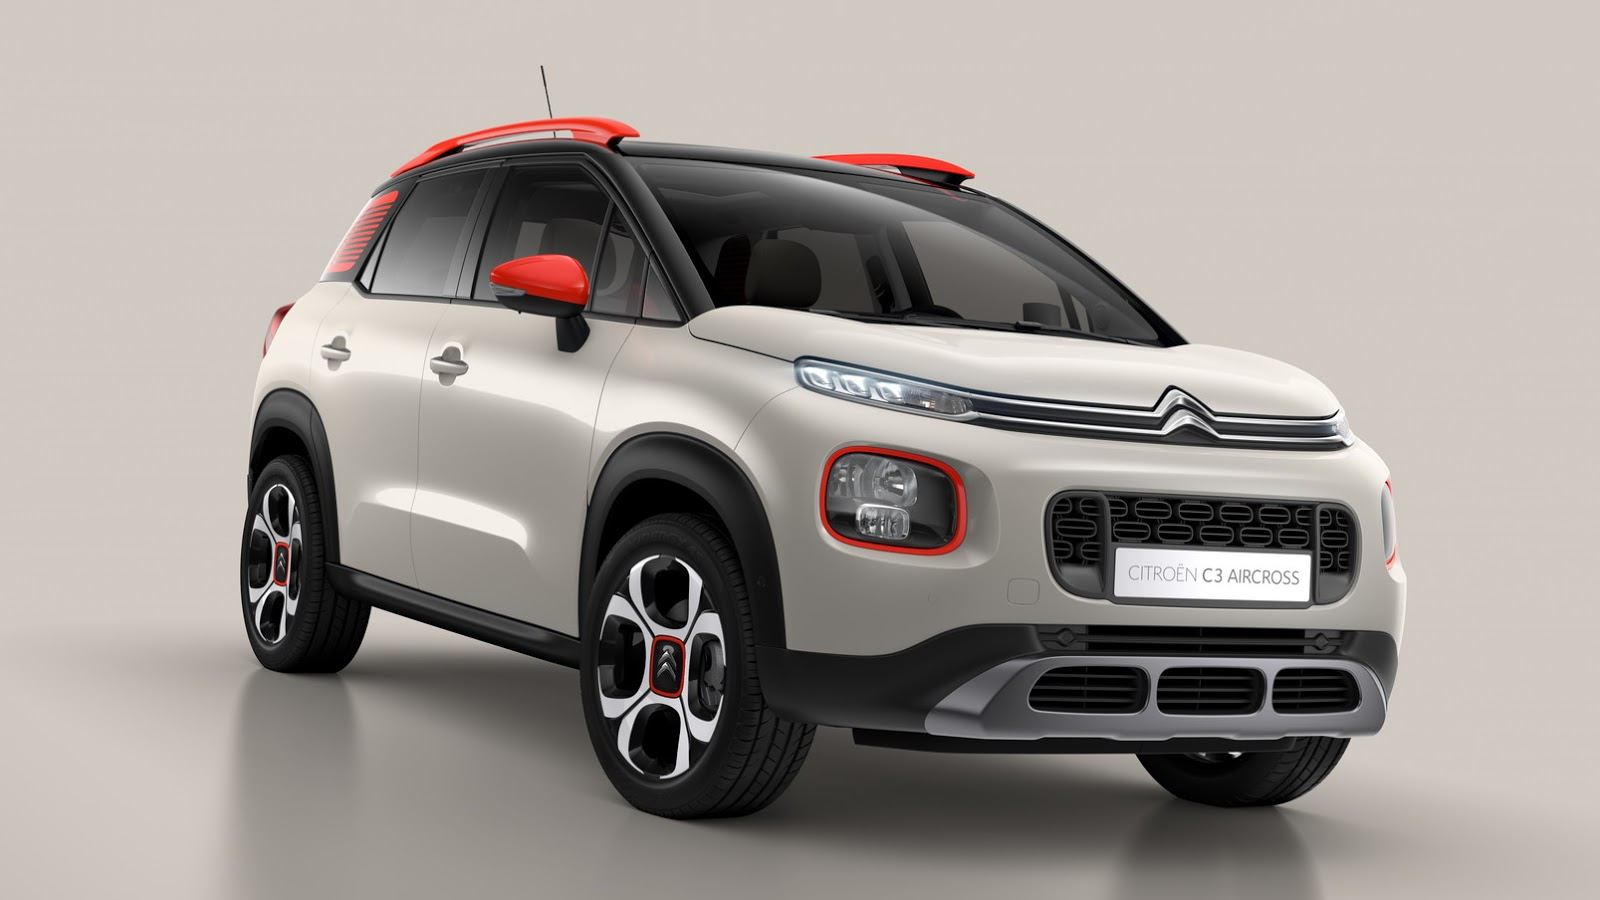 citroen presents c3 picasso replacing c3 aircross autoevolution. Black Bedroom Furniture Sets. Home Design Ideas